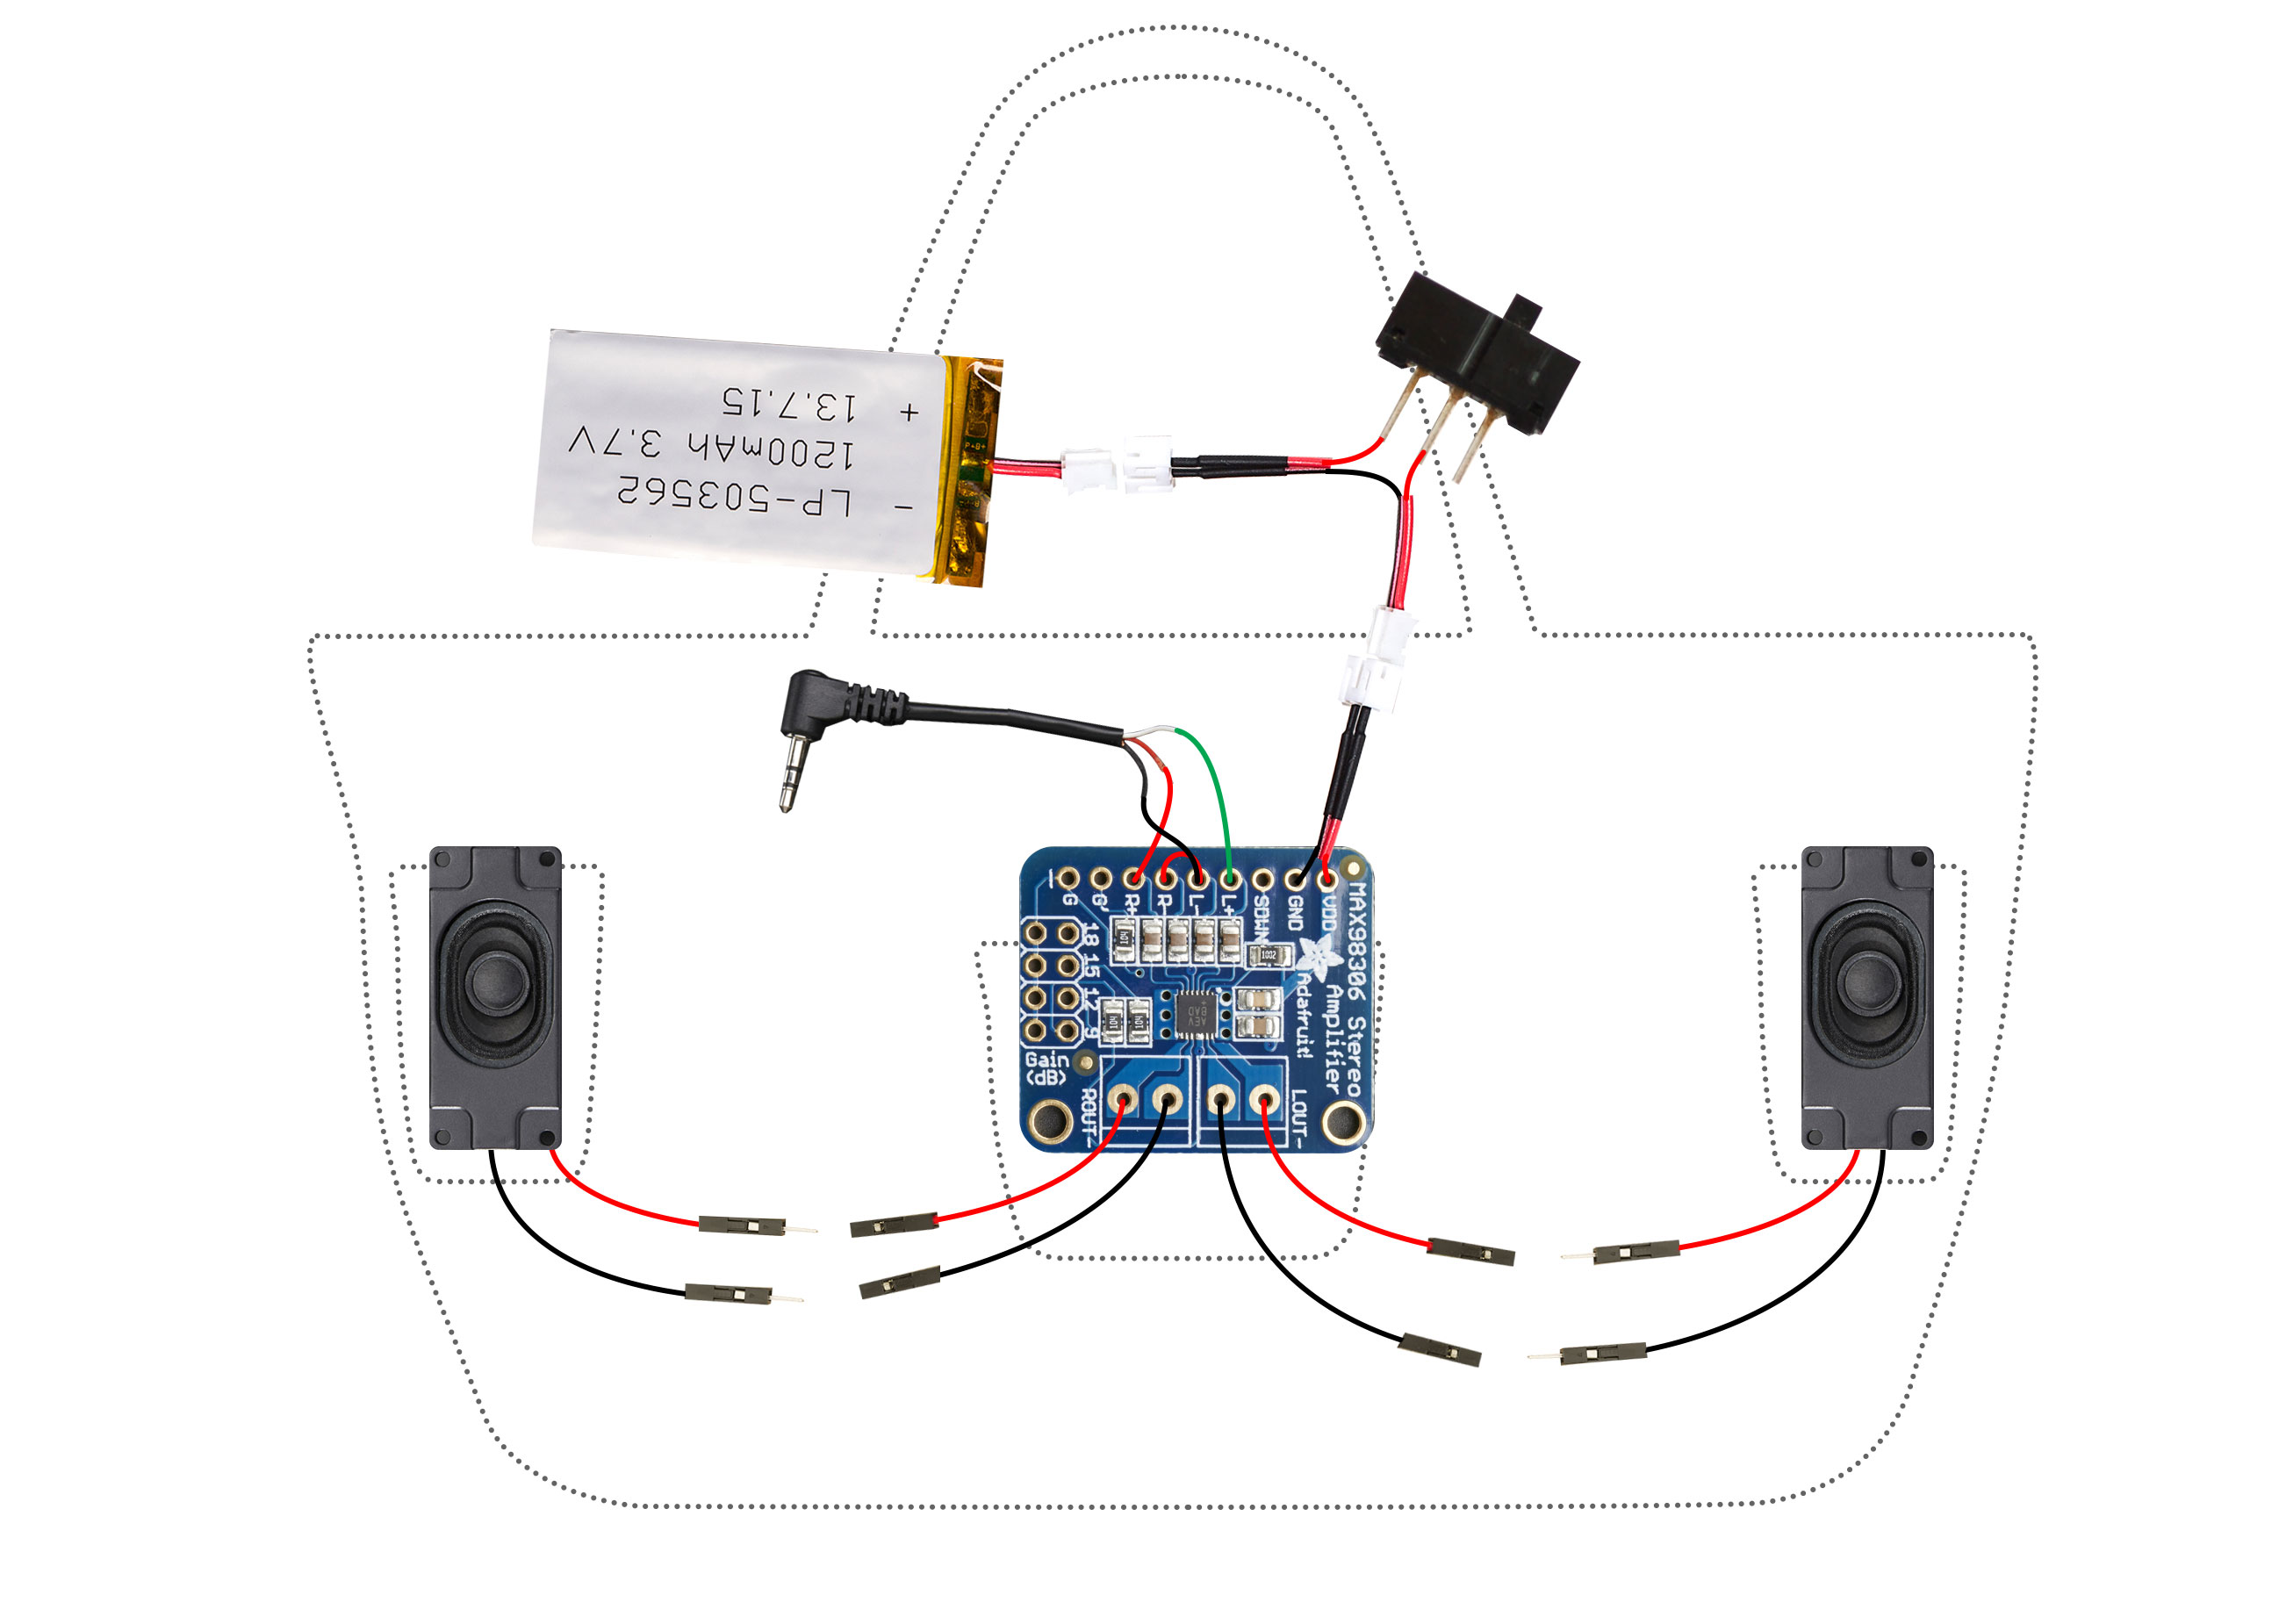 Circuit Diagram Boombox Beach Bag With Audio Amp And Speakers 2 Line Phone Systems Wiring 3d Printing Layout